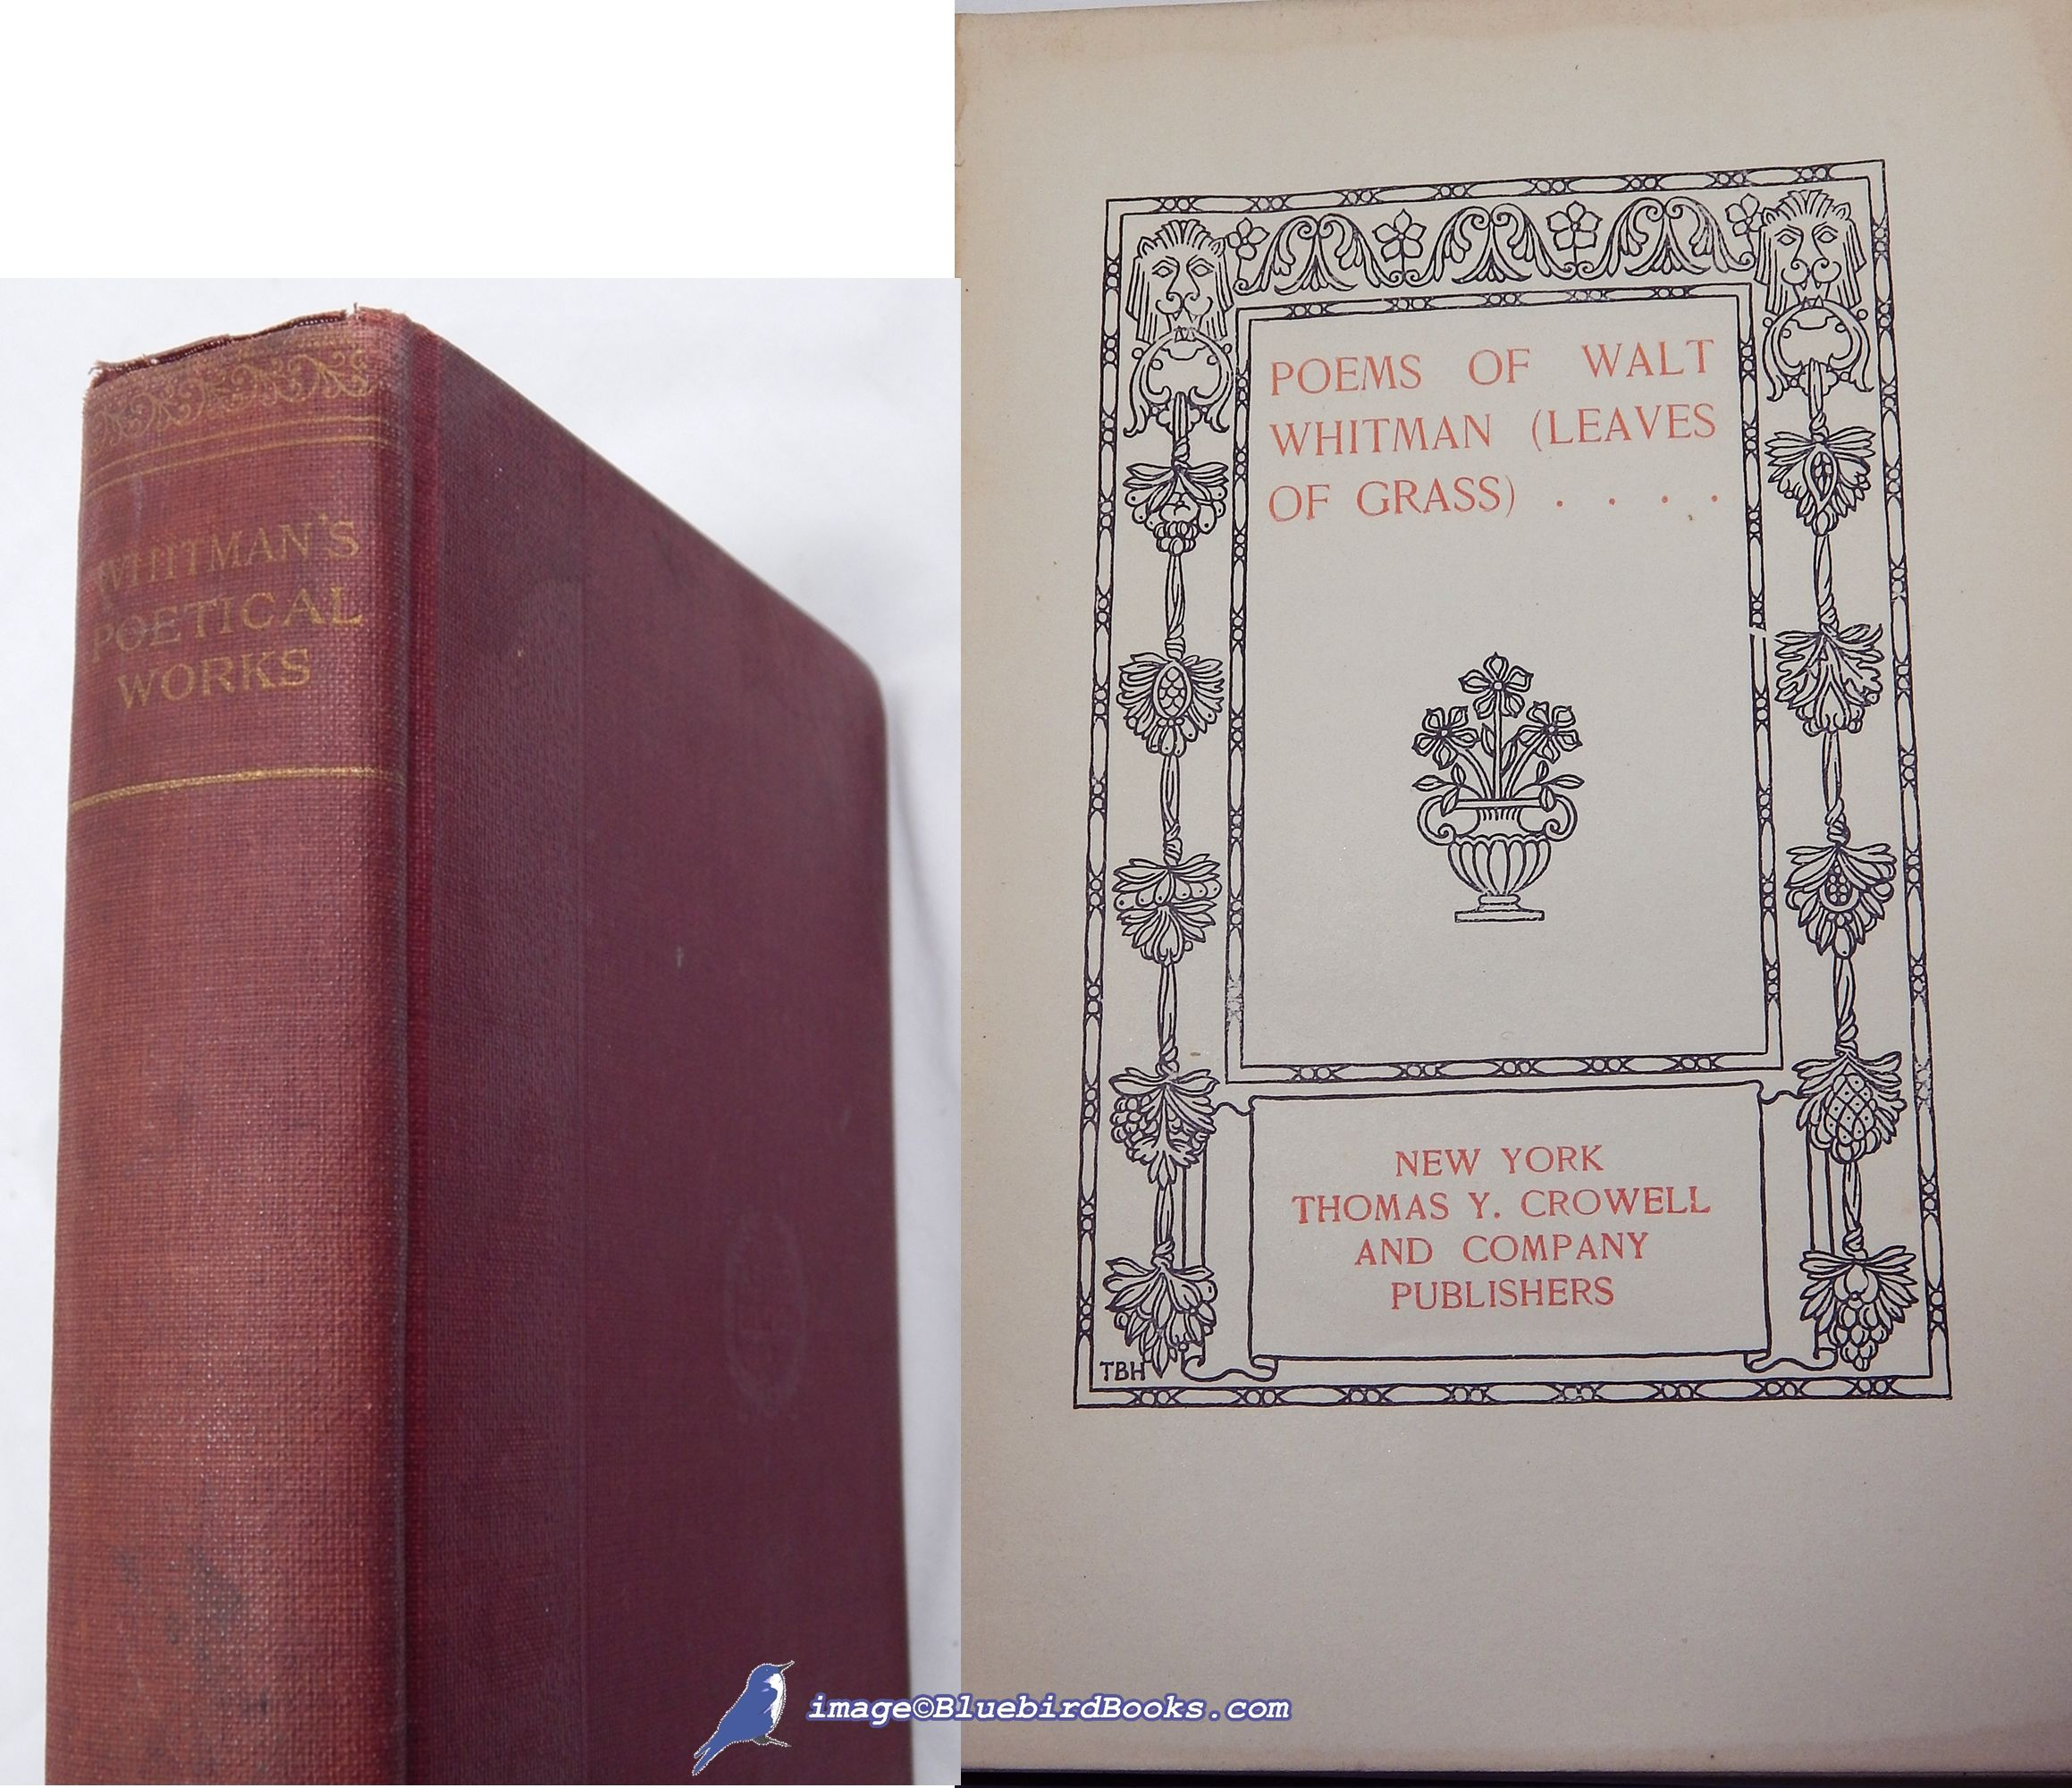 Poems Of Walt Whitman Leaves Of Grass By Walt Whitman Hardcover 1902 From Bluebird Books And Bibliocom